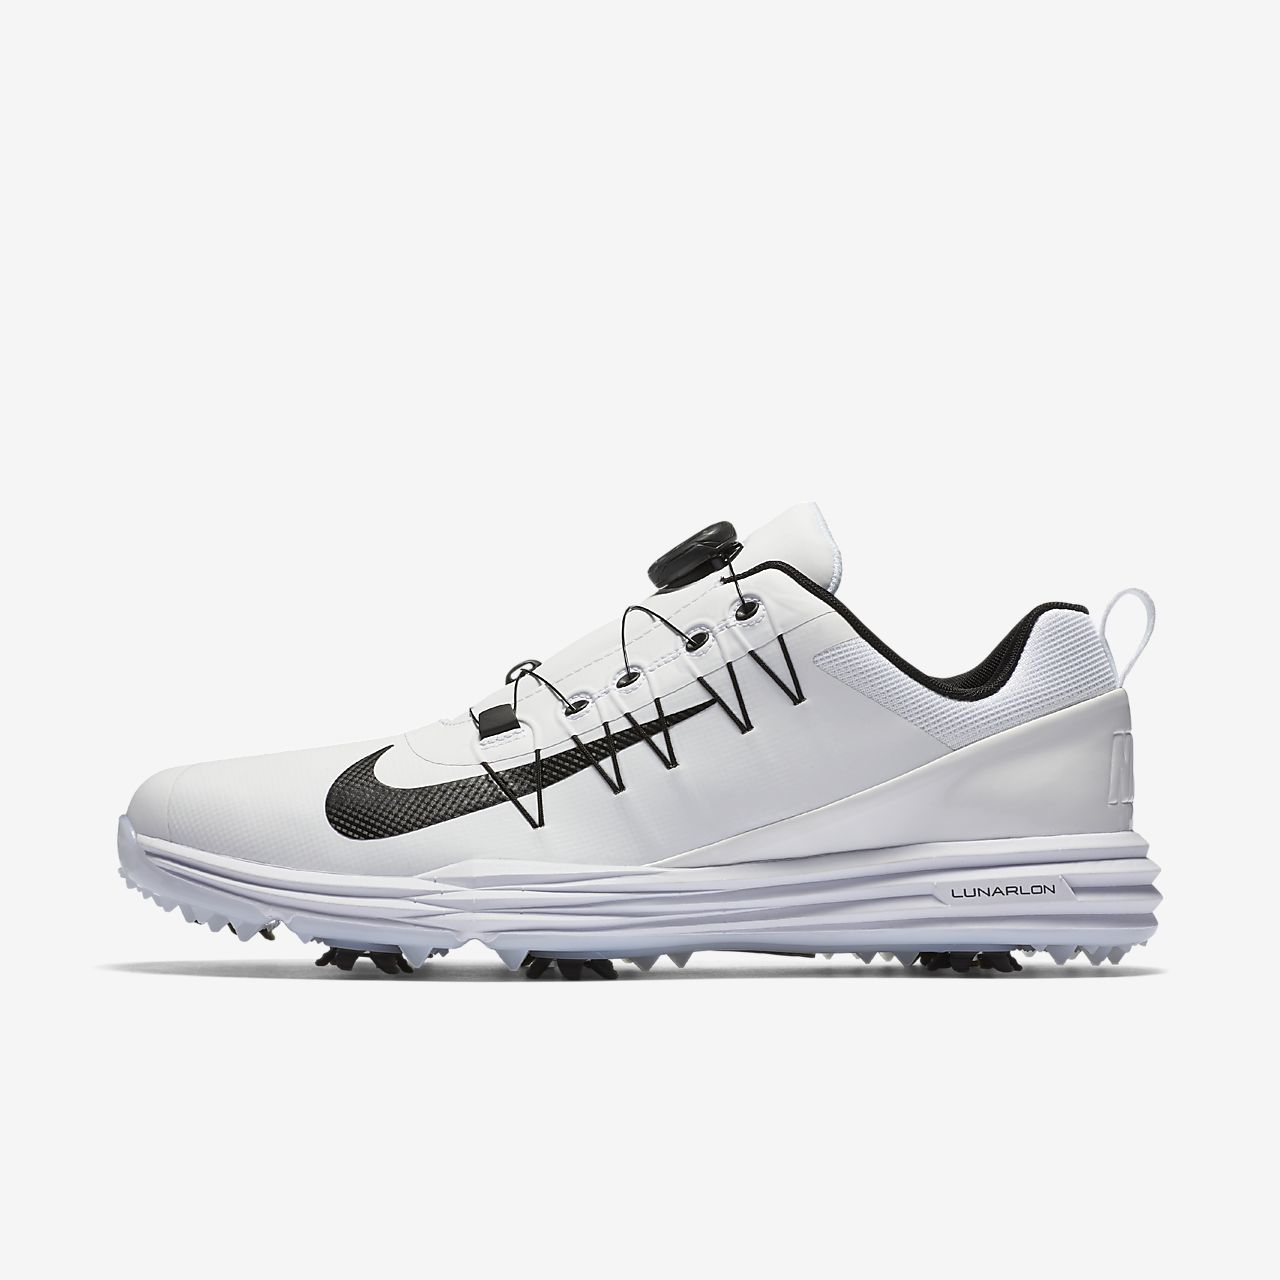 Nike Lunar Command 2 Scarpe da Golf Uomo Nero Black/White 42 EU